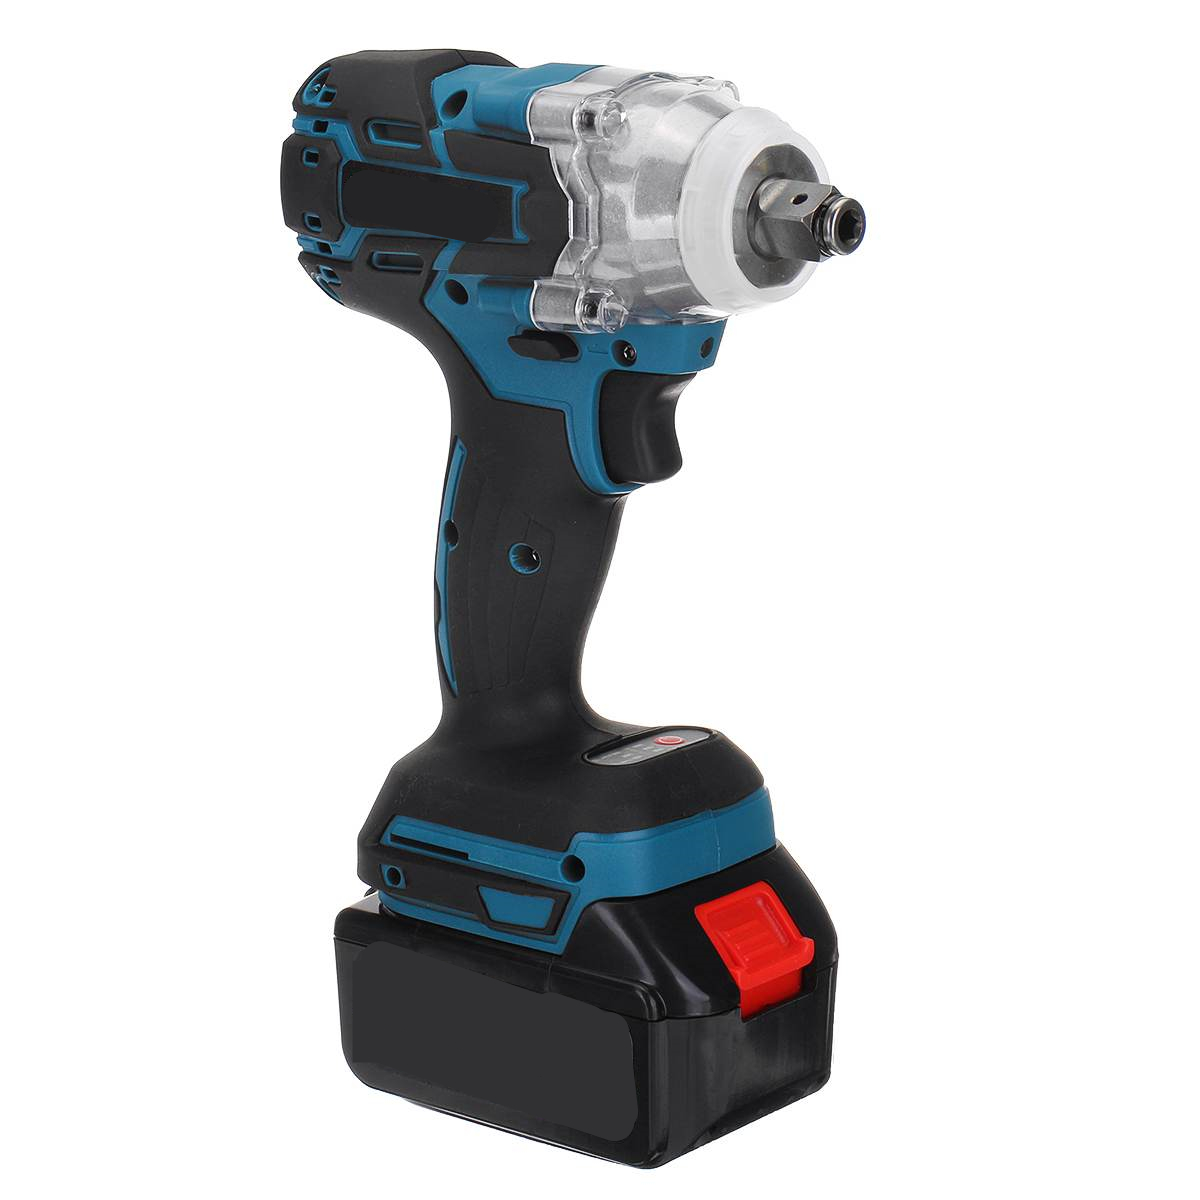 388vf Electric Impact Wrench Brushless Cordless 1/2inch Power Tools 15000Amh Li Battery +LED light Adapt to Makita 18V Battery